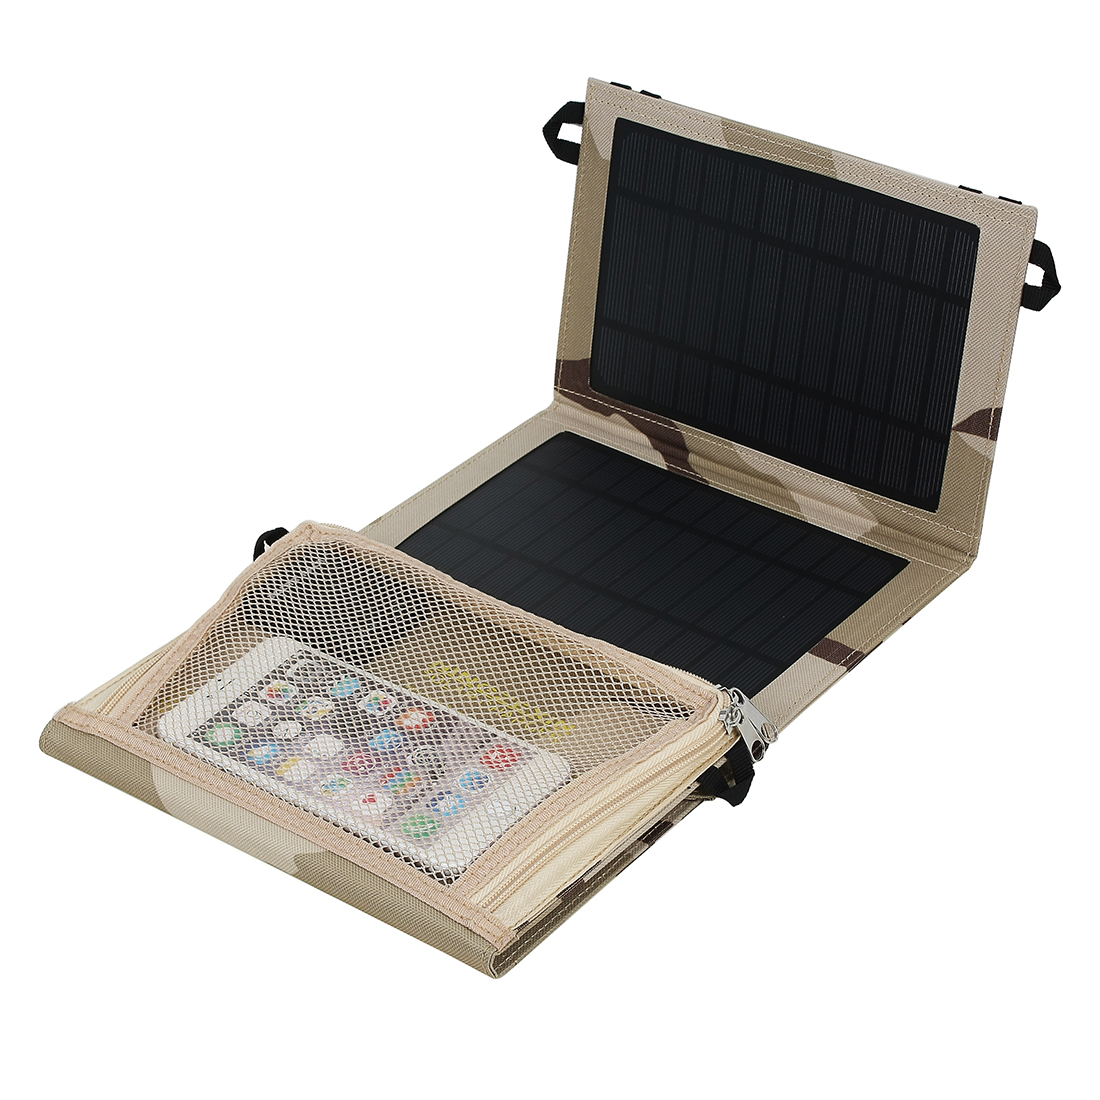 14W One Ports USB Foldable Solar Panel Charger for Smart Phone Portable Pad More Camouflage